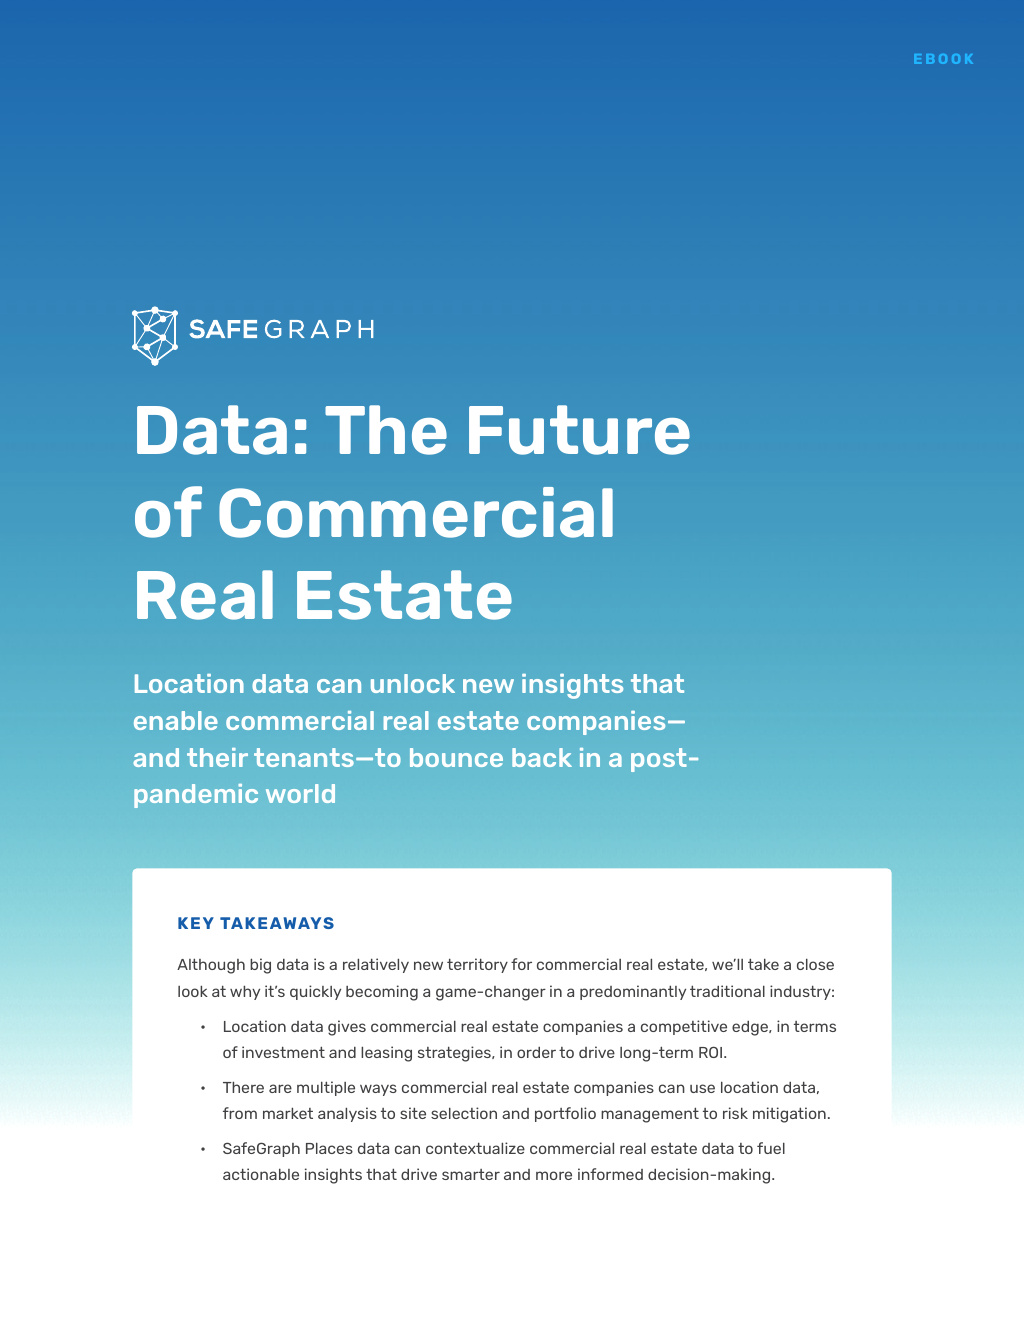 Data: The Future of Commercial Real Estate